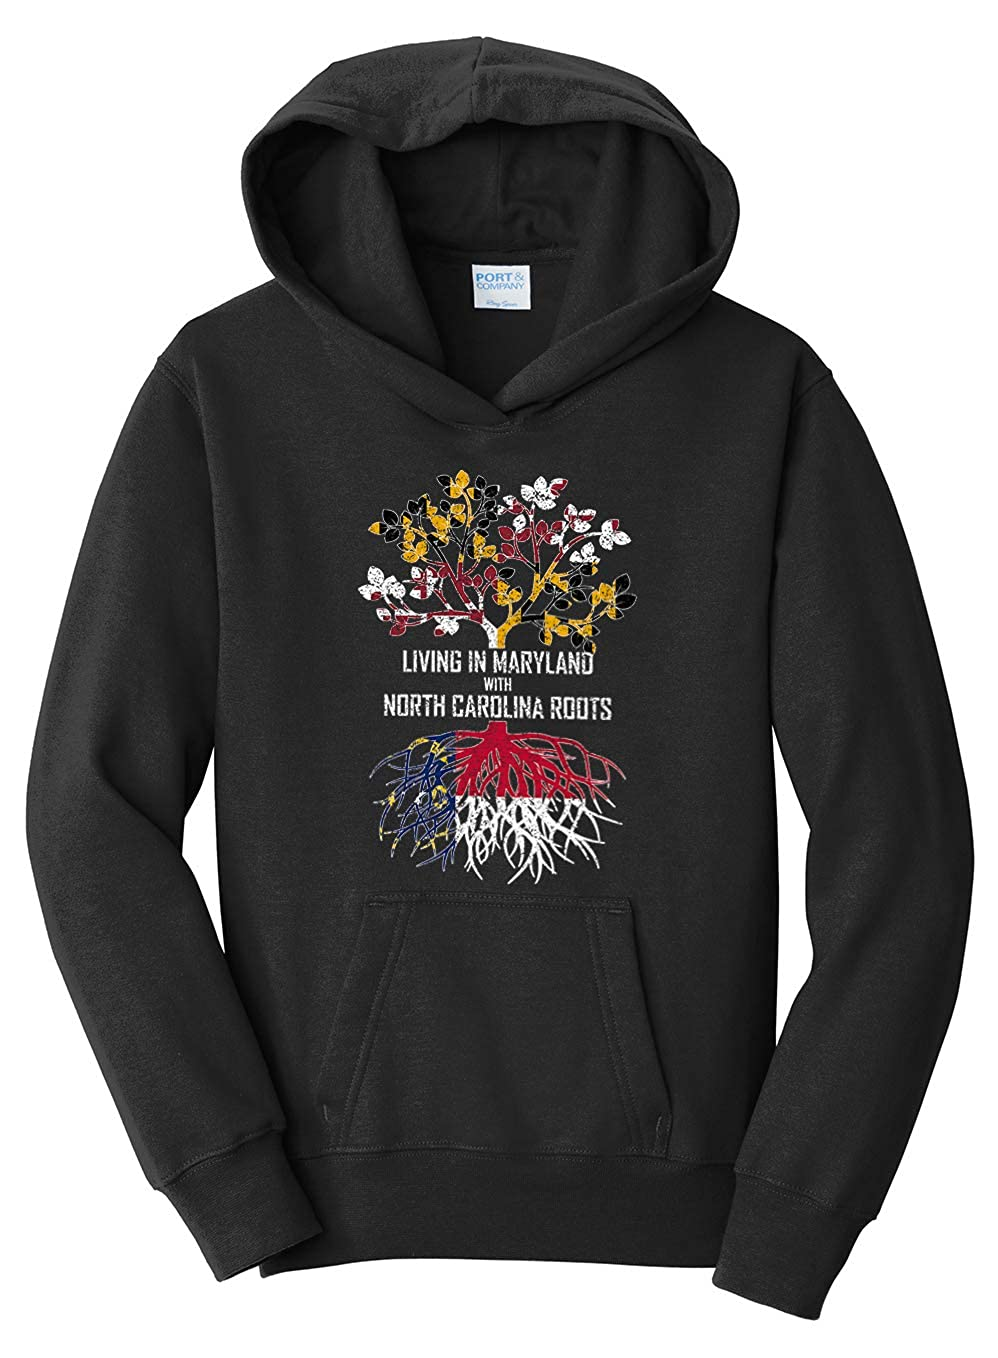 Tenacitee Girls Living in Maryland with North Carolina Roots Hooded Sweatshirt